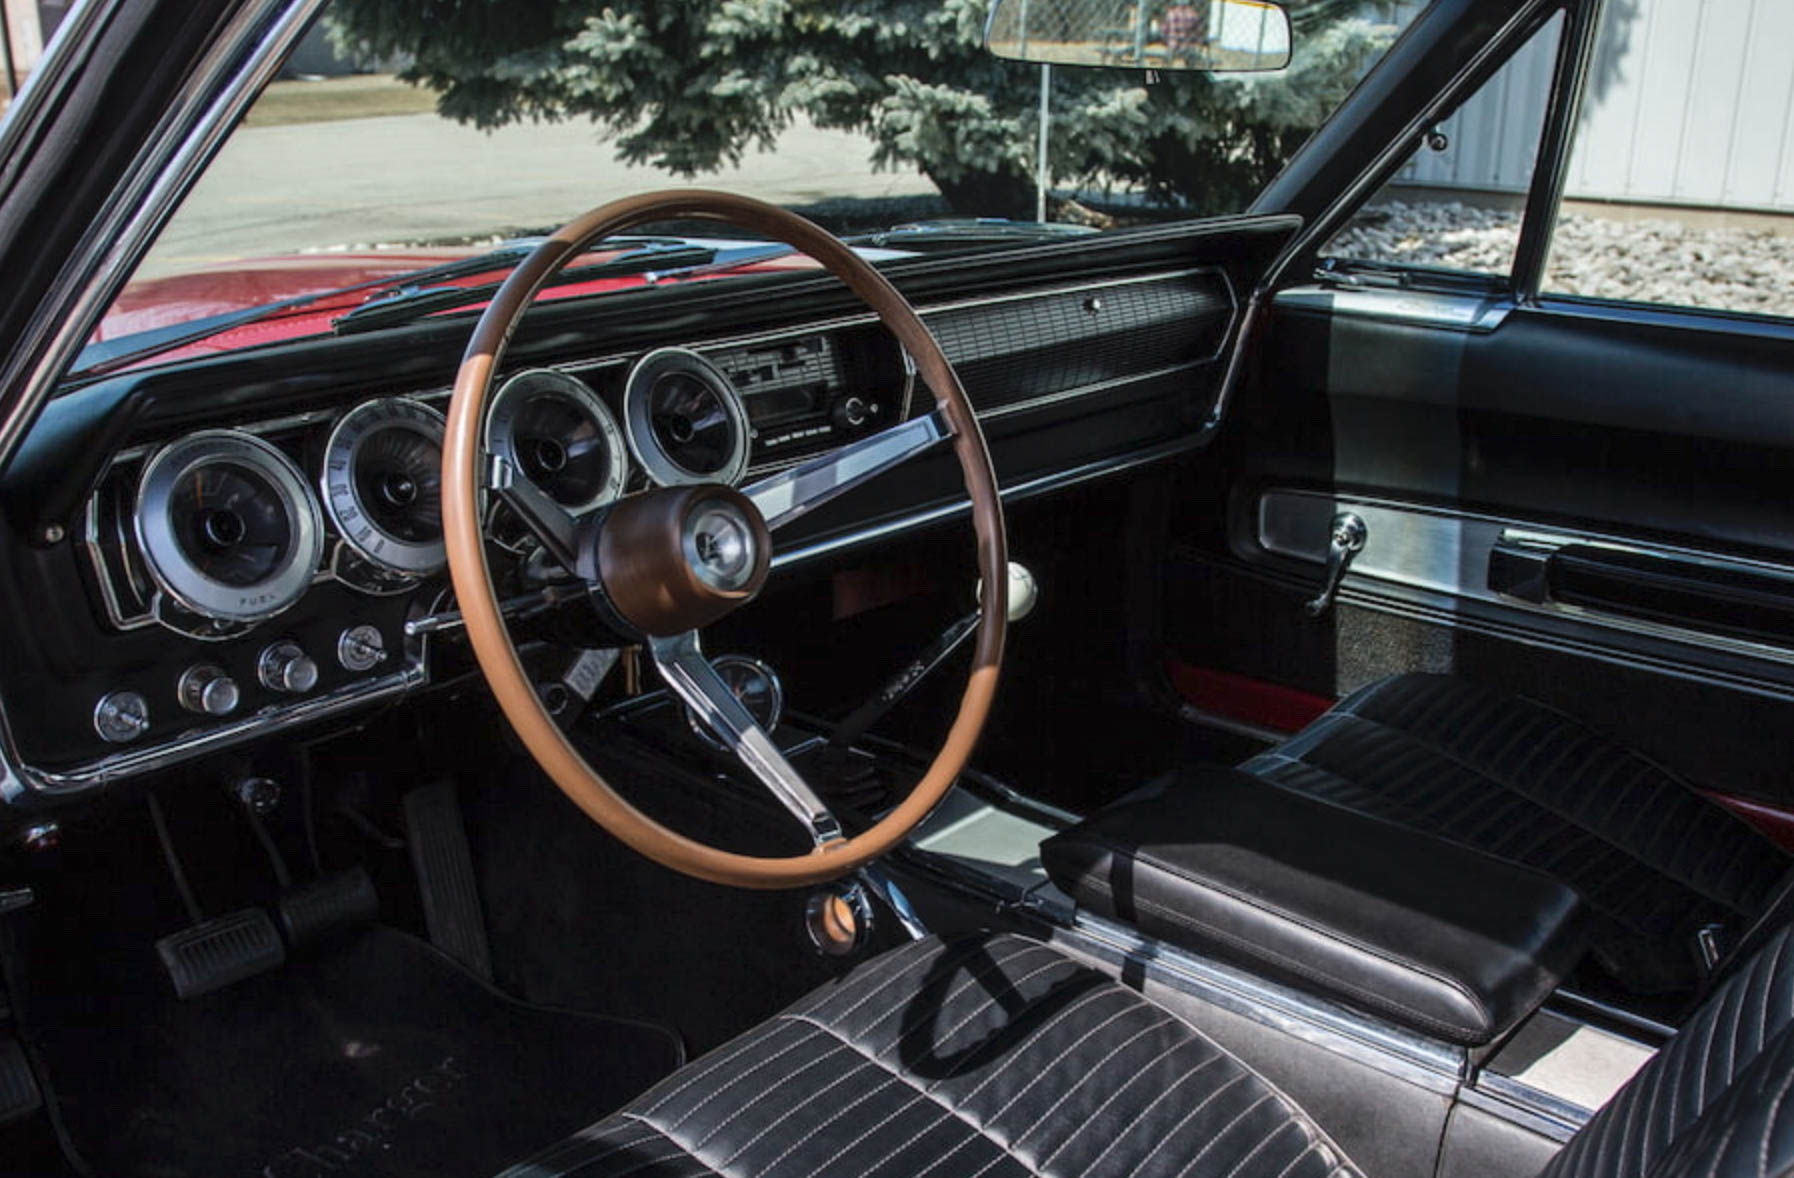 1966 Dodge Charger dash